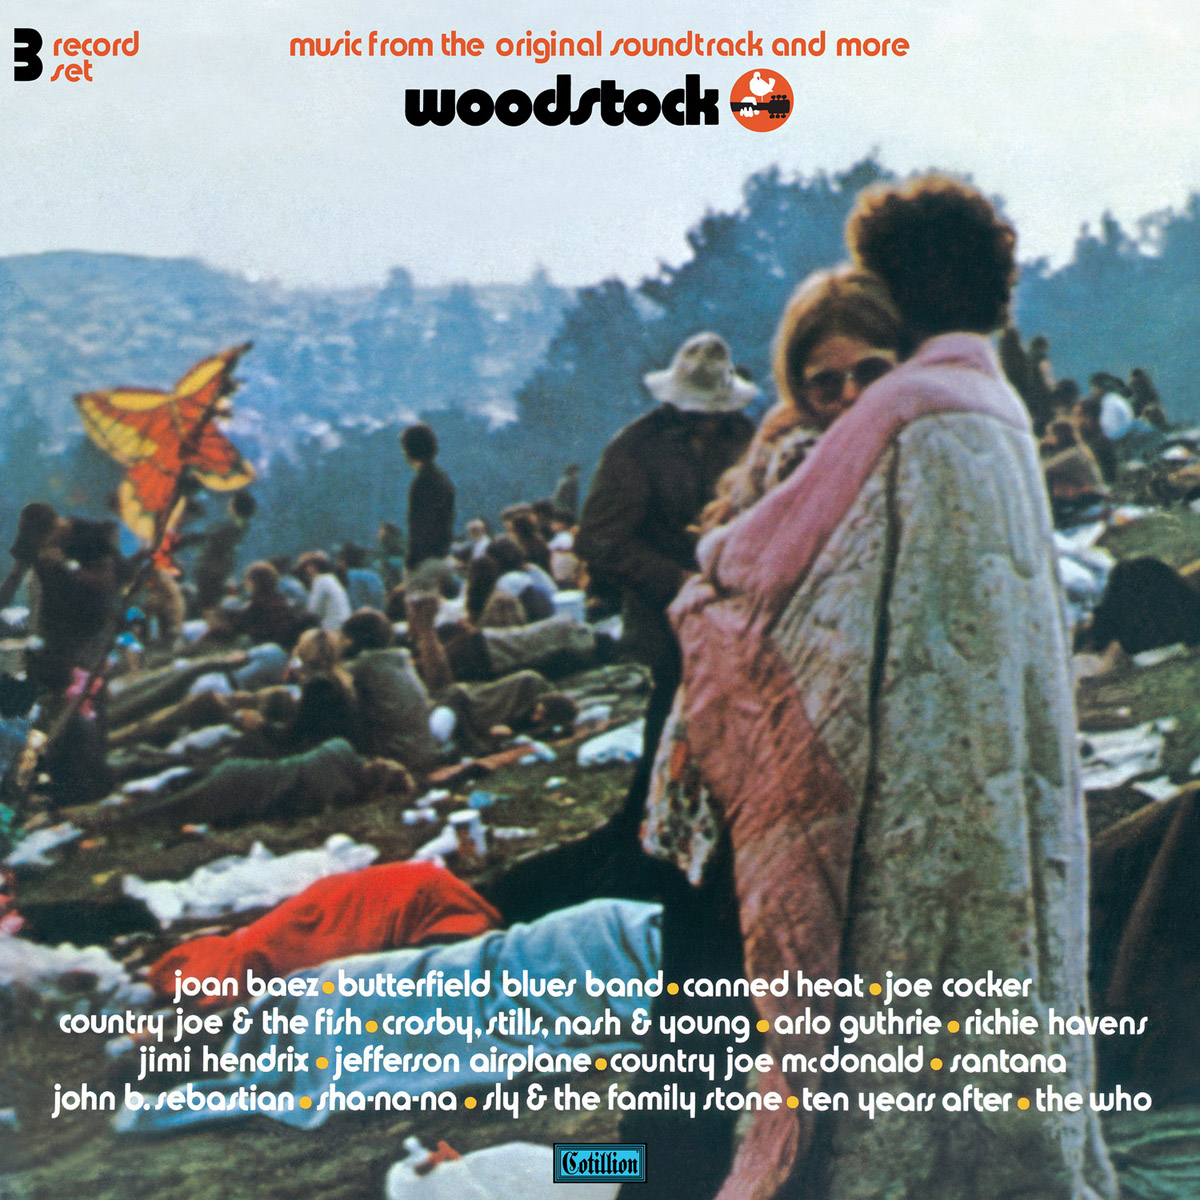 Various Artists Various Artists. Woodstock: Music From The Original Soundtrack And More, Vol. 1 (3 LP) детская книга из ткани and music family hlbs t1 3d 0 1 3